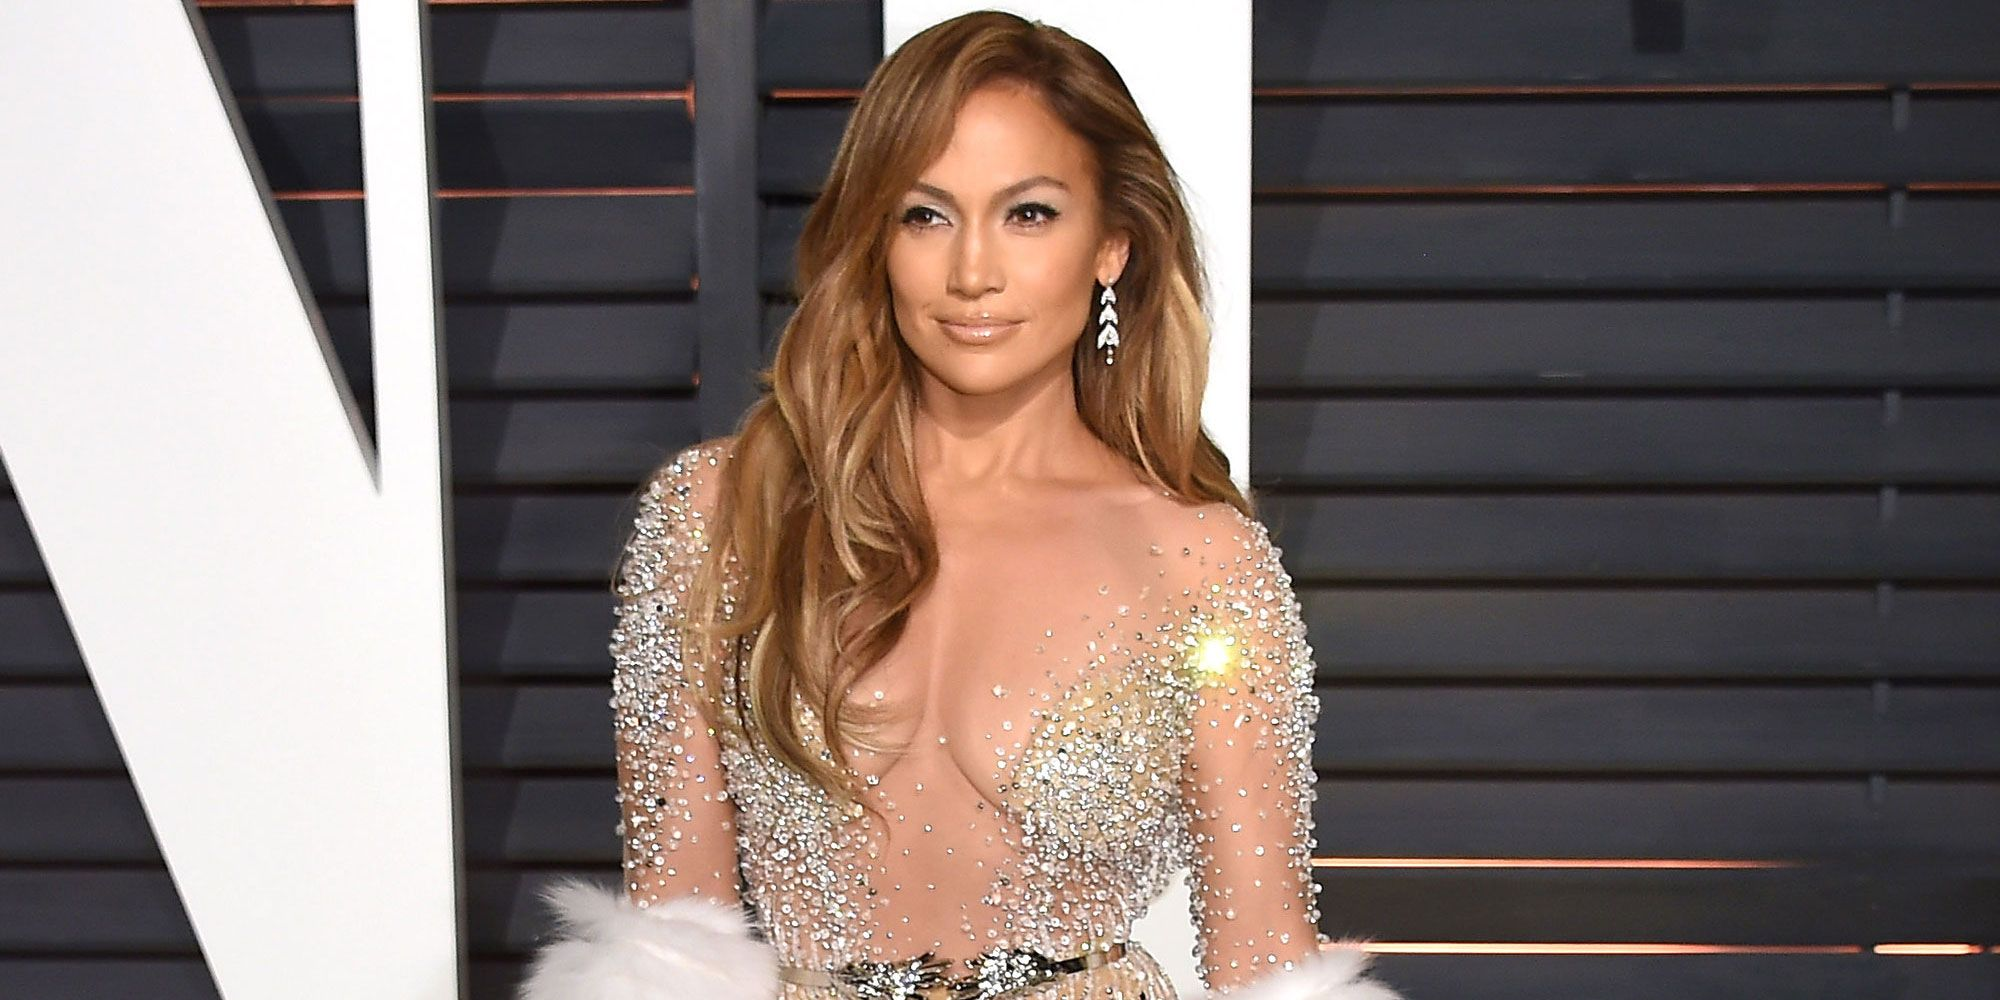 Jennifer Lopez Cleavage